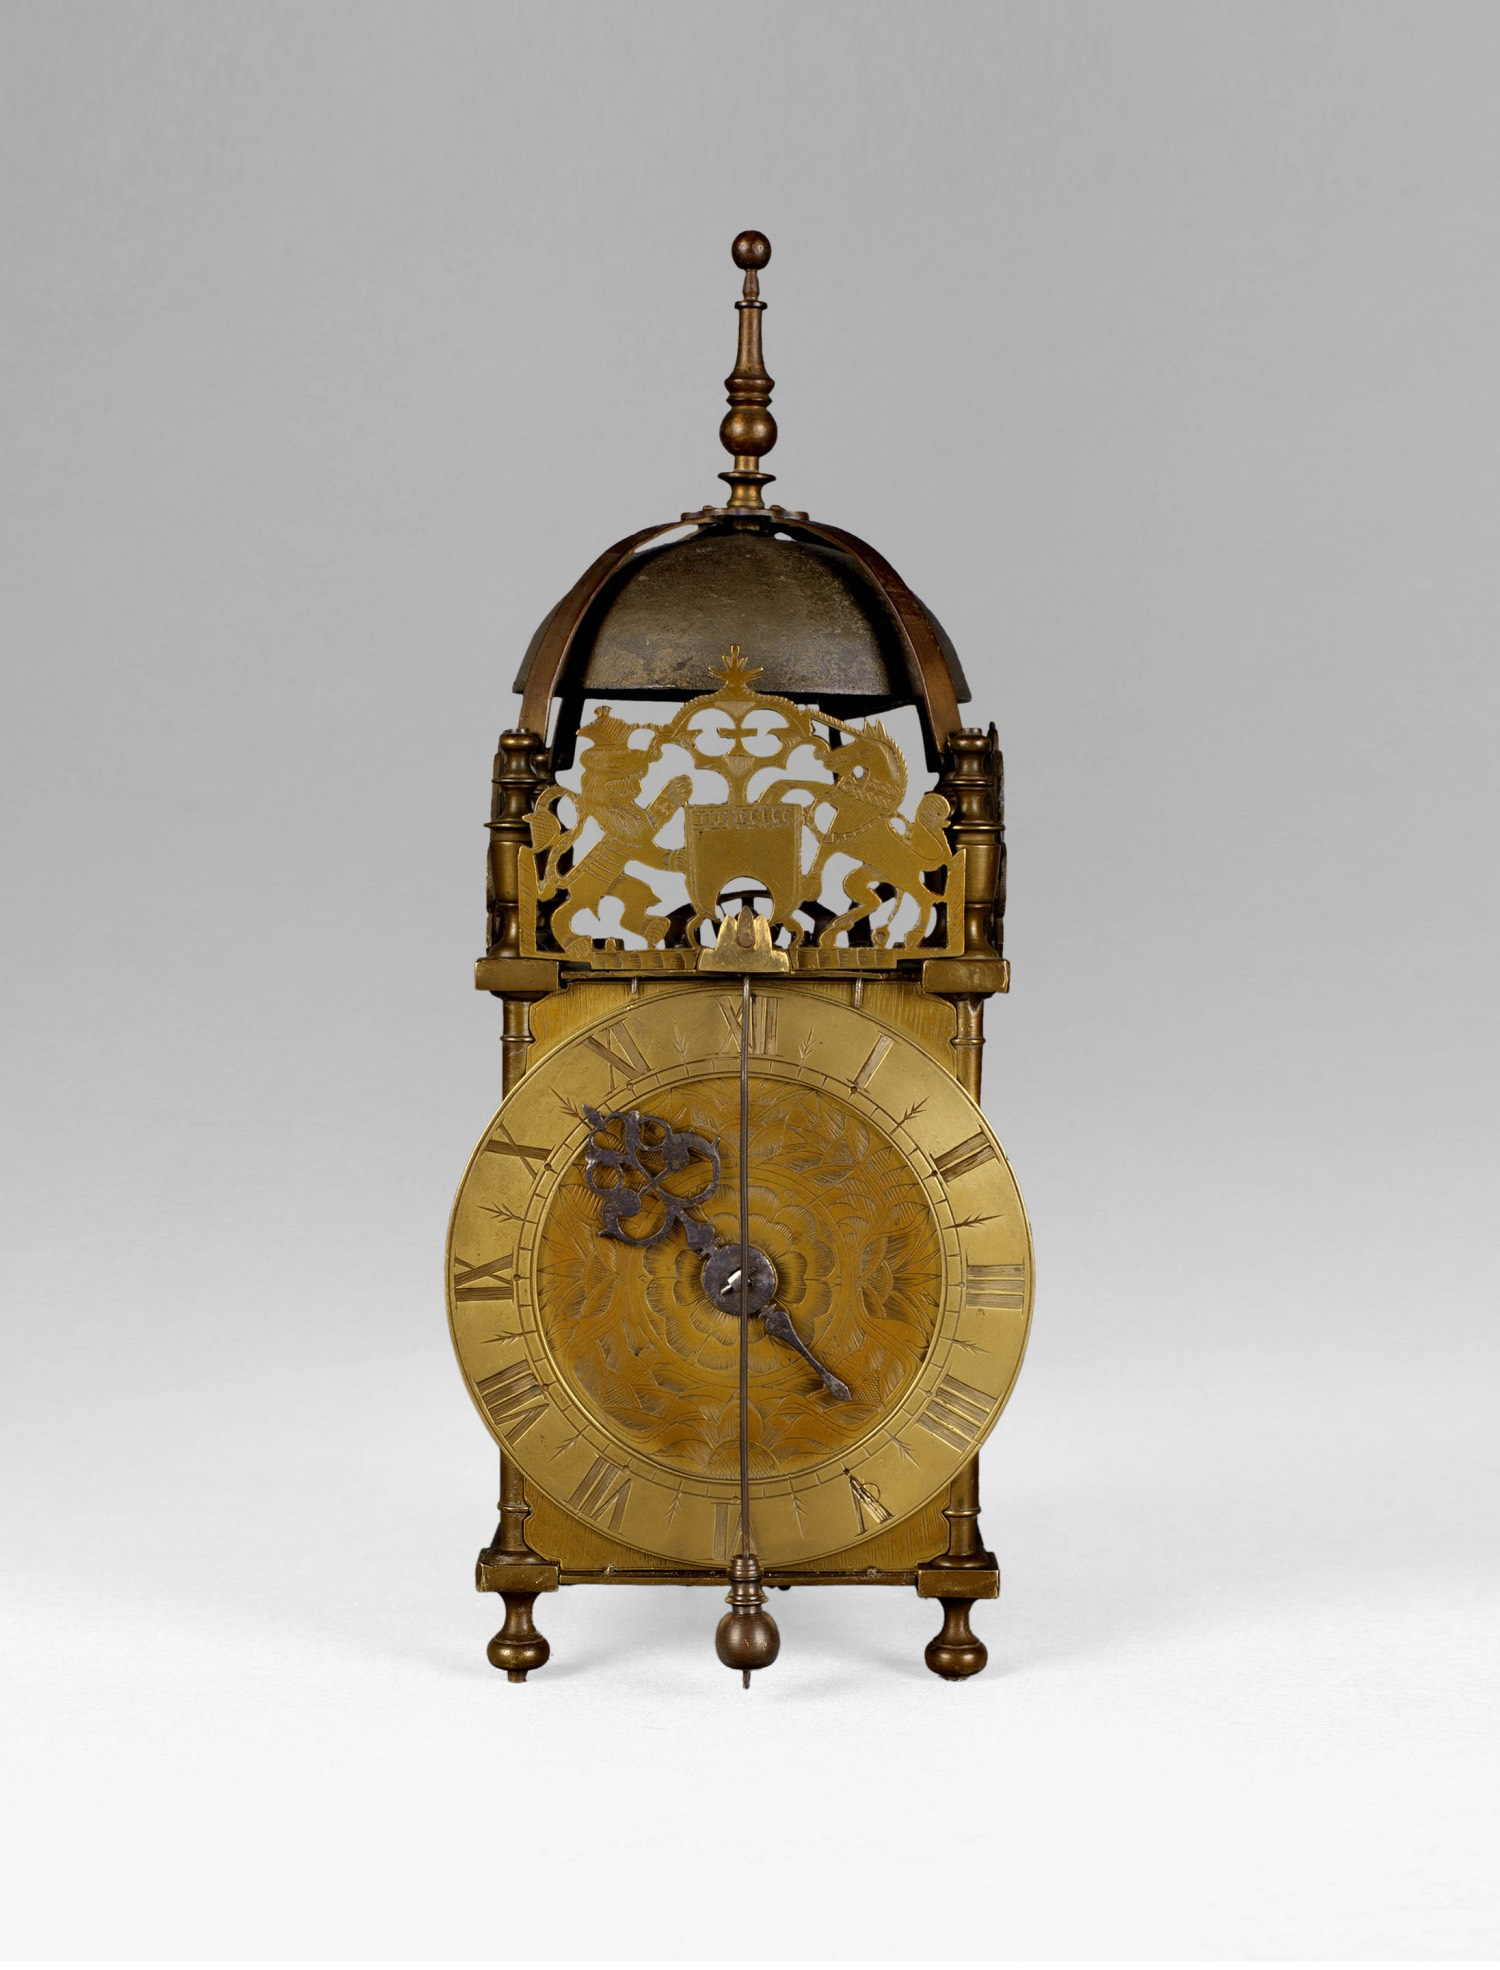 17TH CENTURY ANGLO-DUTCH LANTERN CLOCK